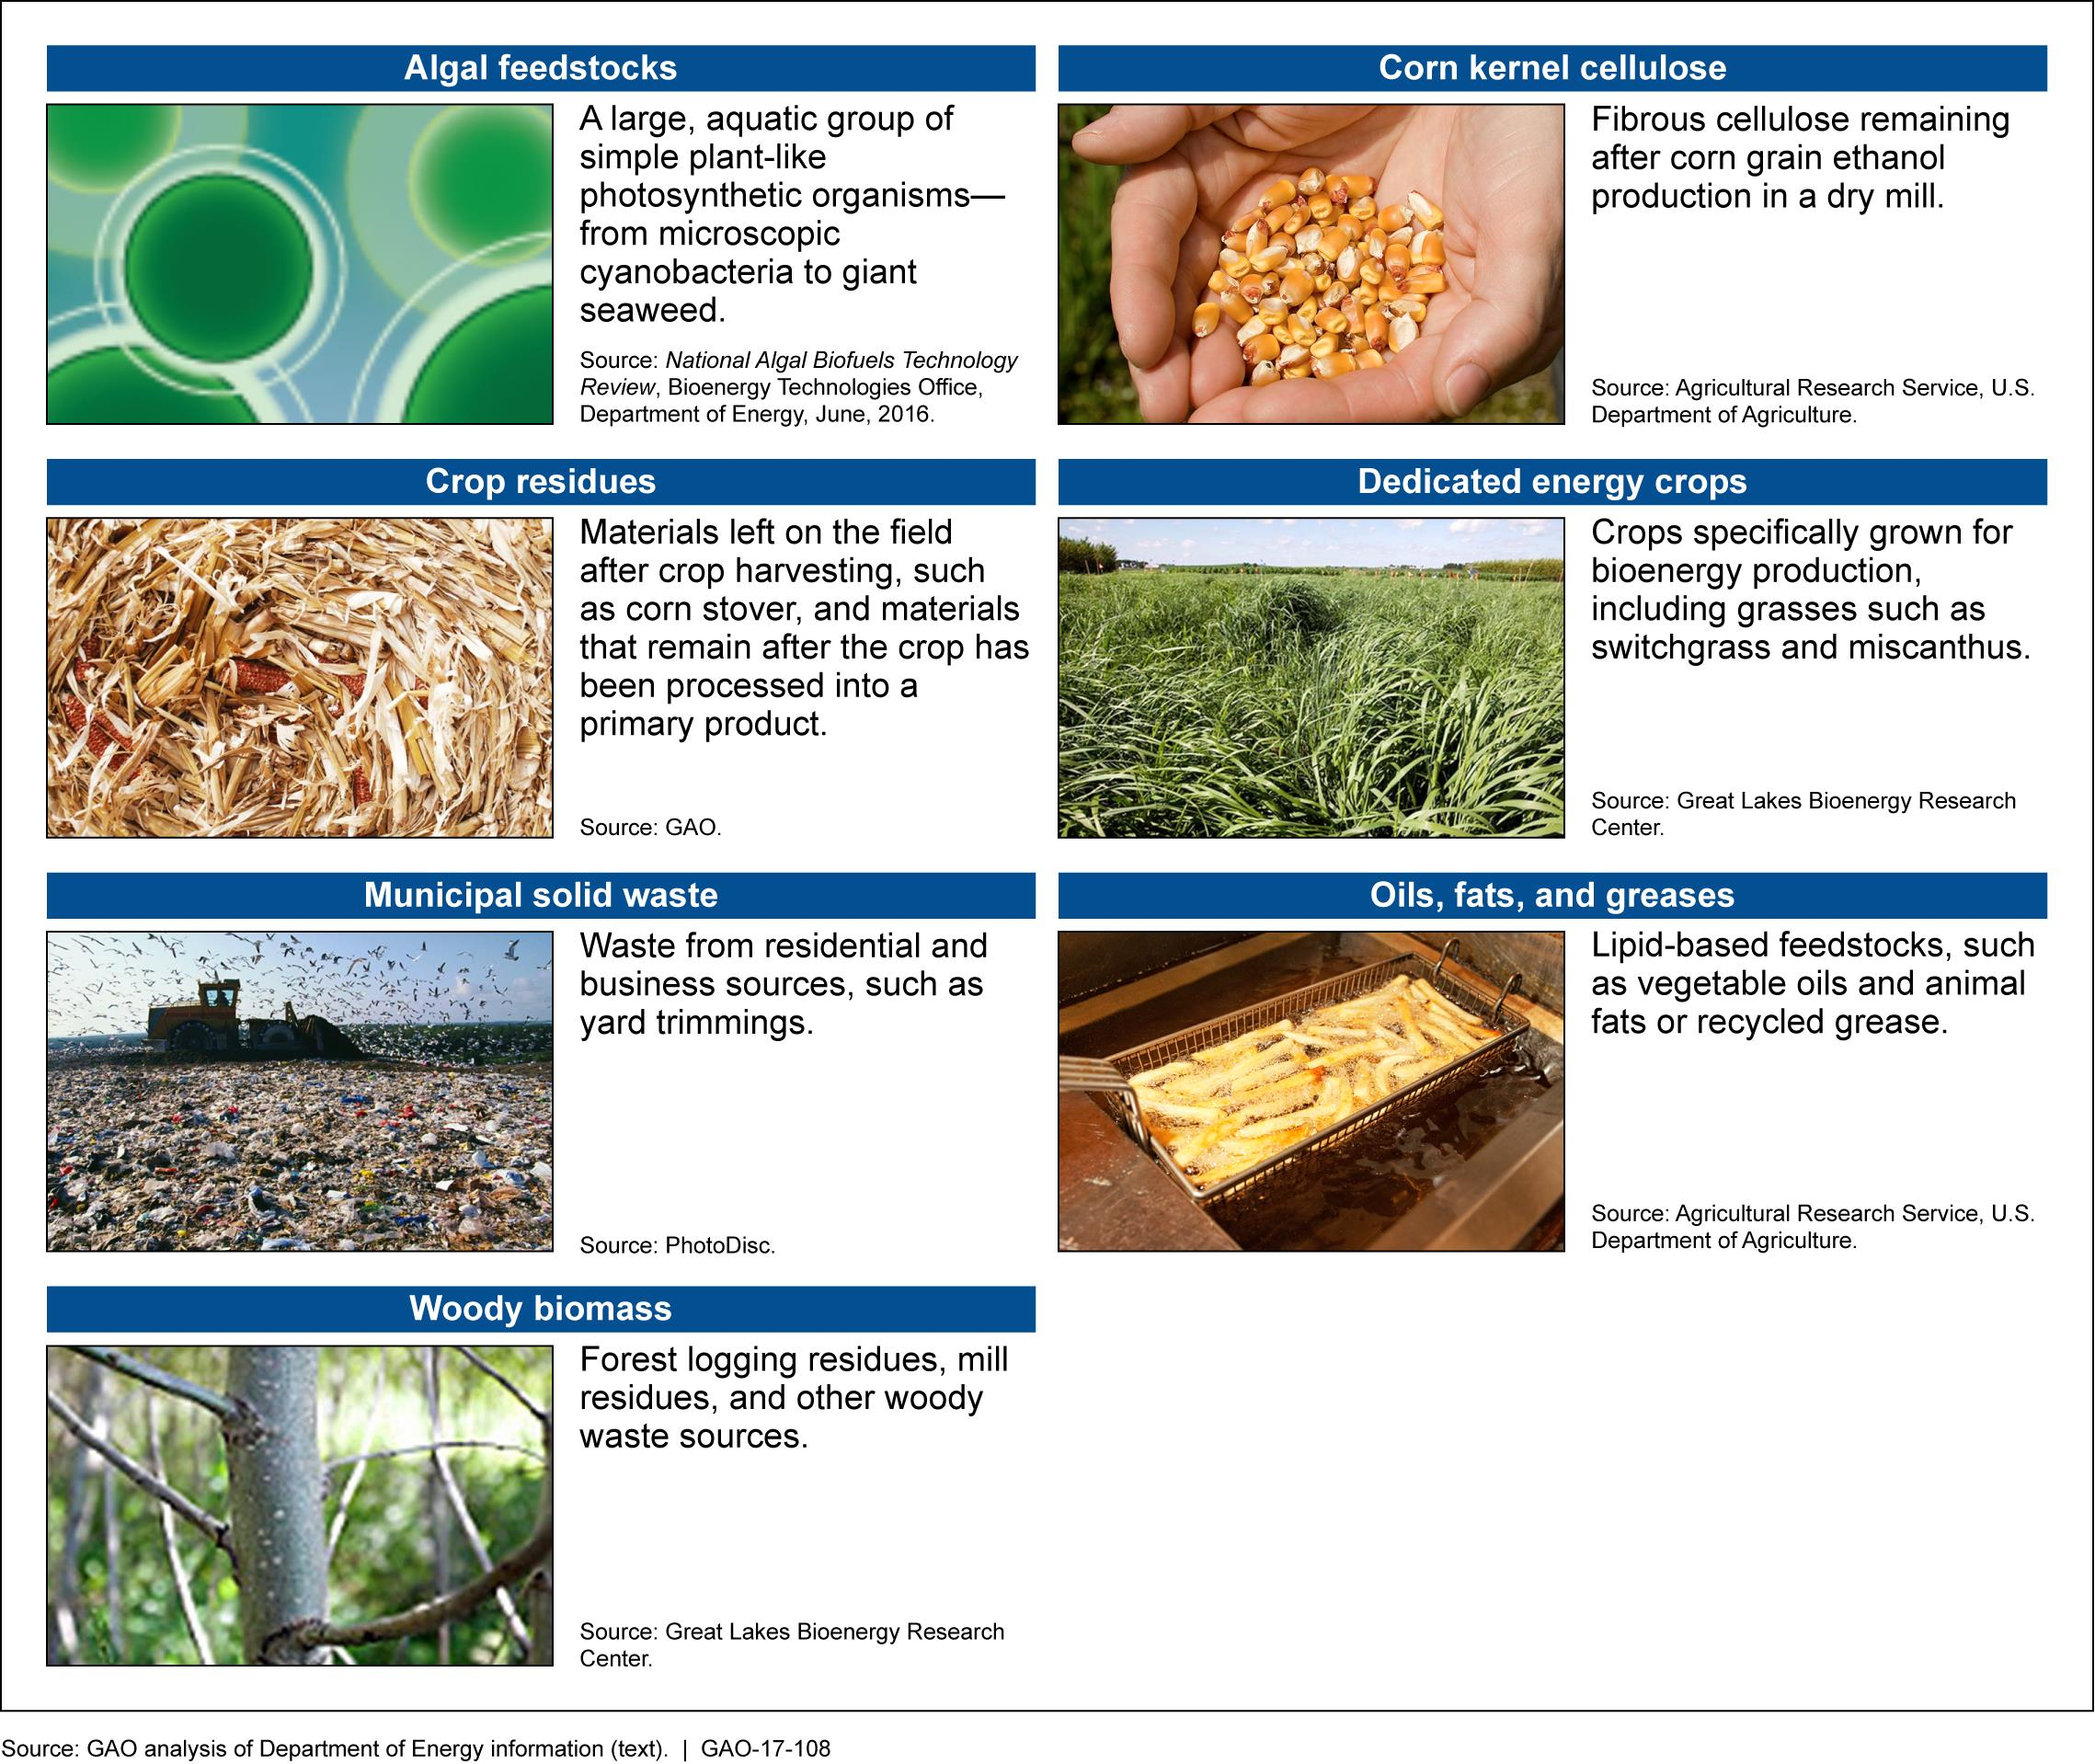 7 examples of biofuels feedstocks, including corn kernel cellulose, frying oils, and woody biomass.